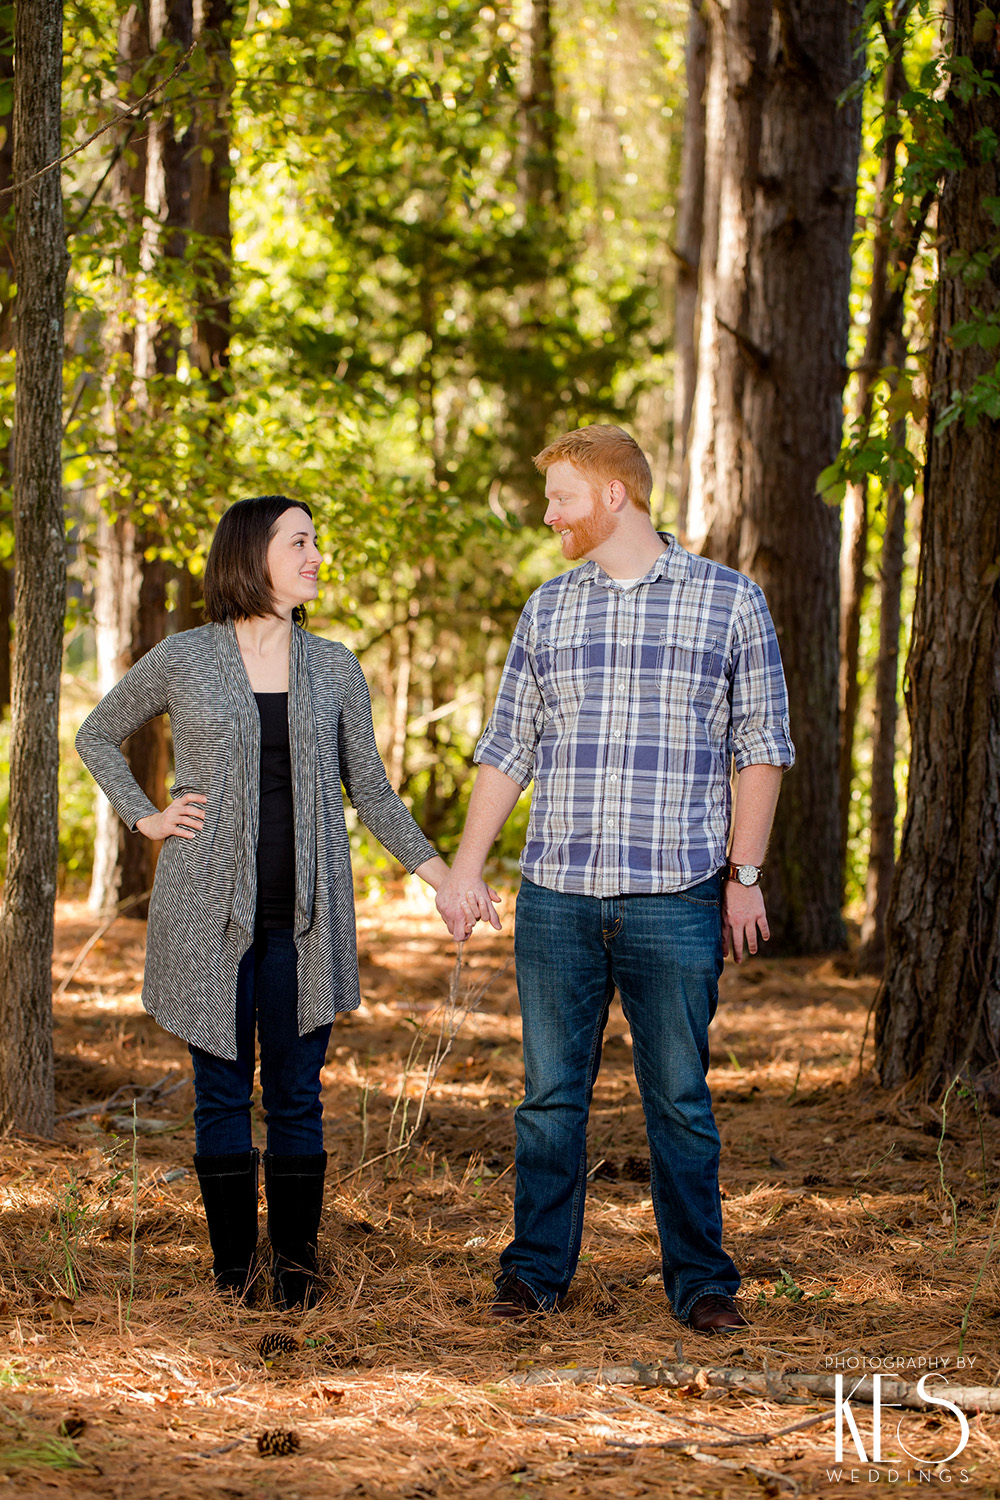 Toren_Chris_Engagements_0099.JPG